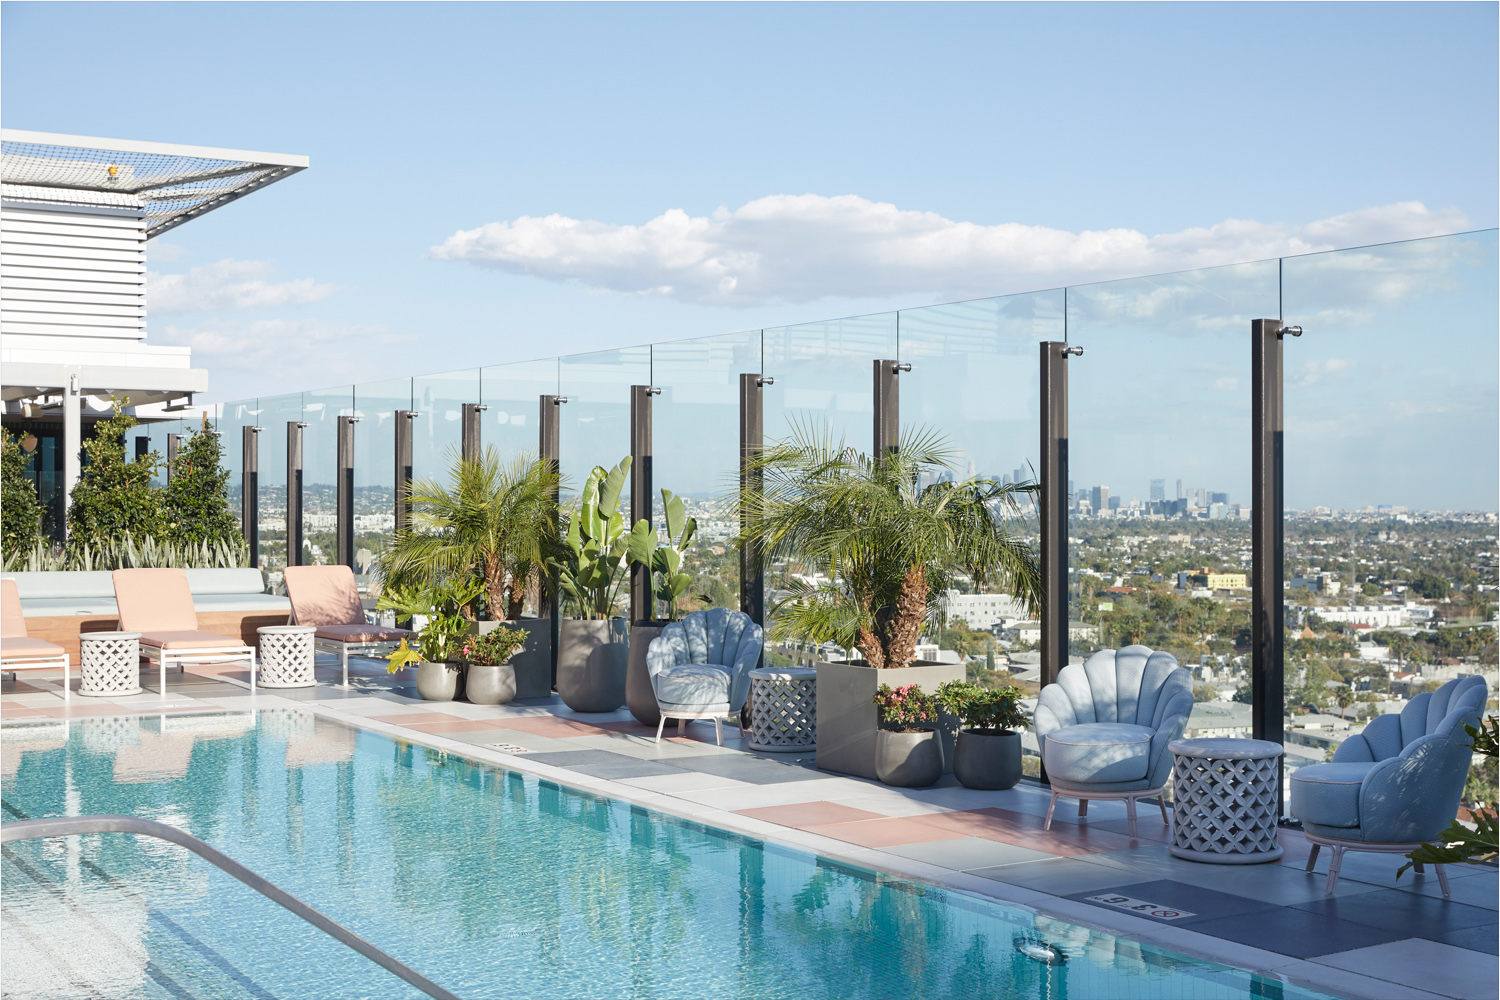 The Britely includes a rooftop pool, terrace and cabana bar